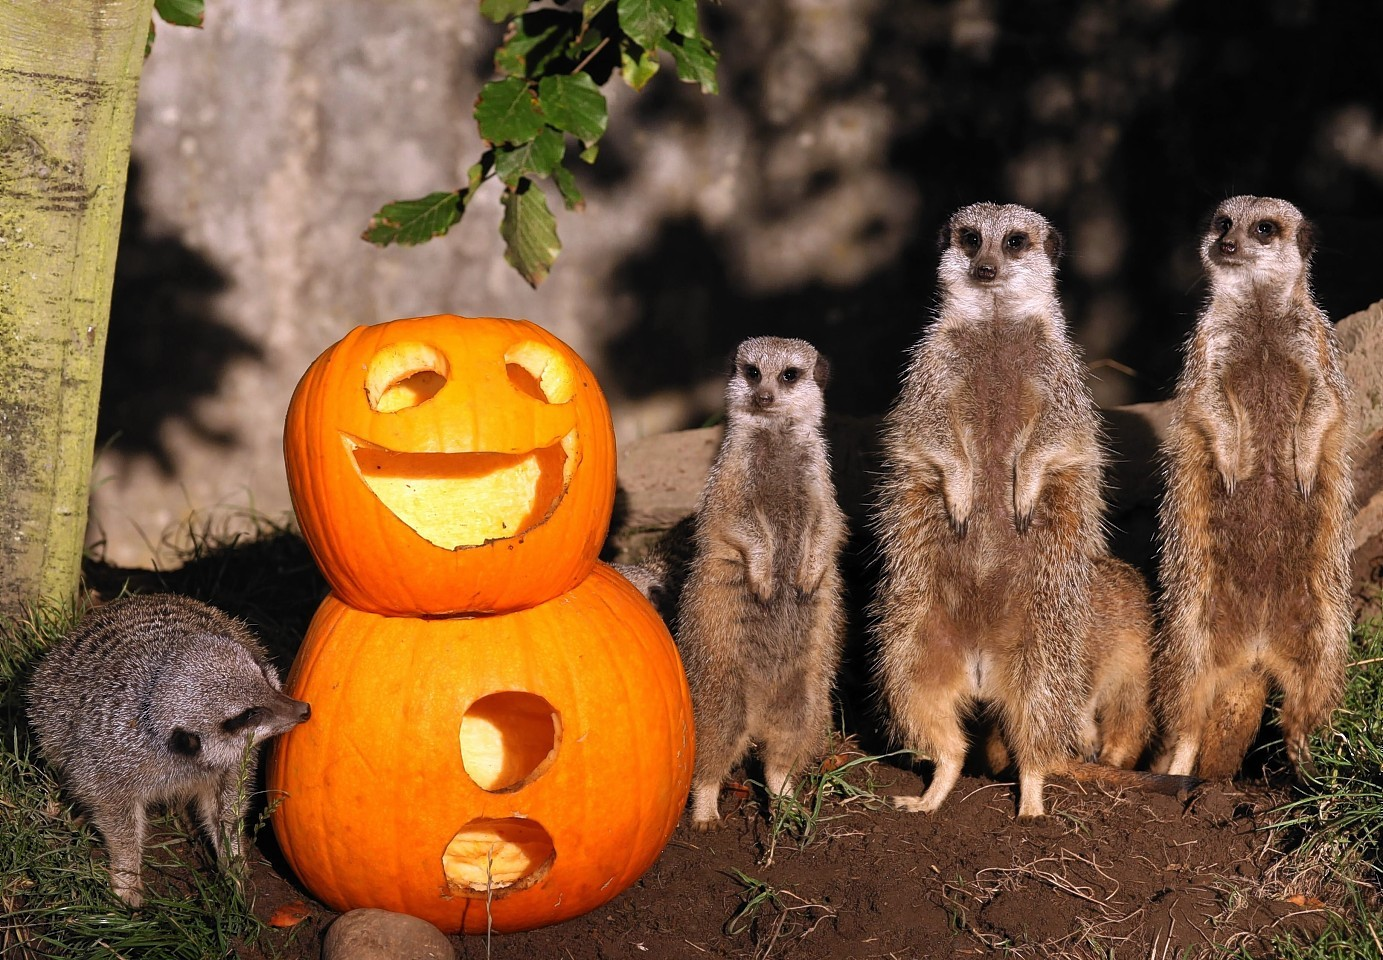 Meerkats and their pumpkins